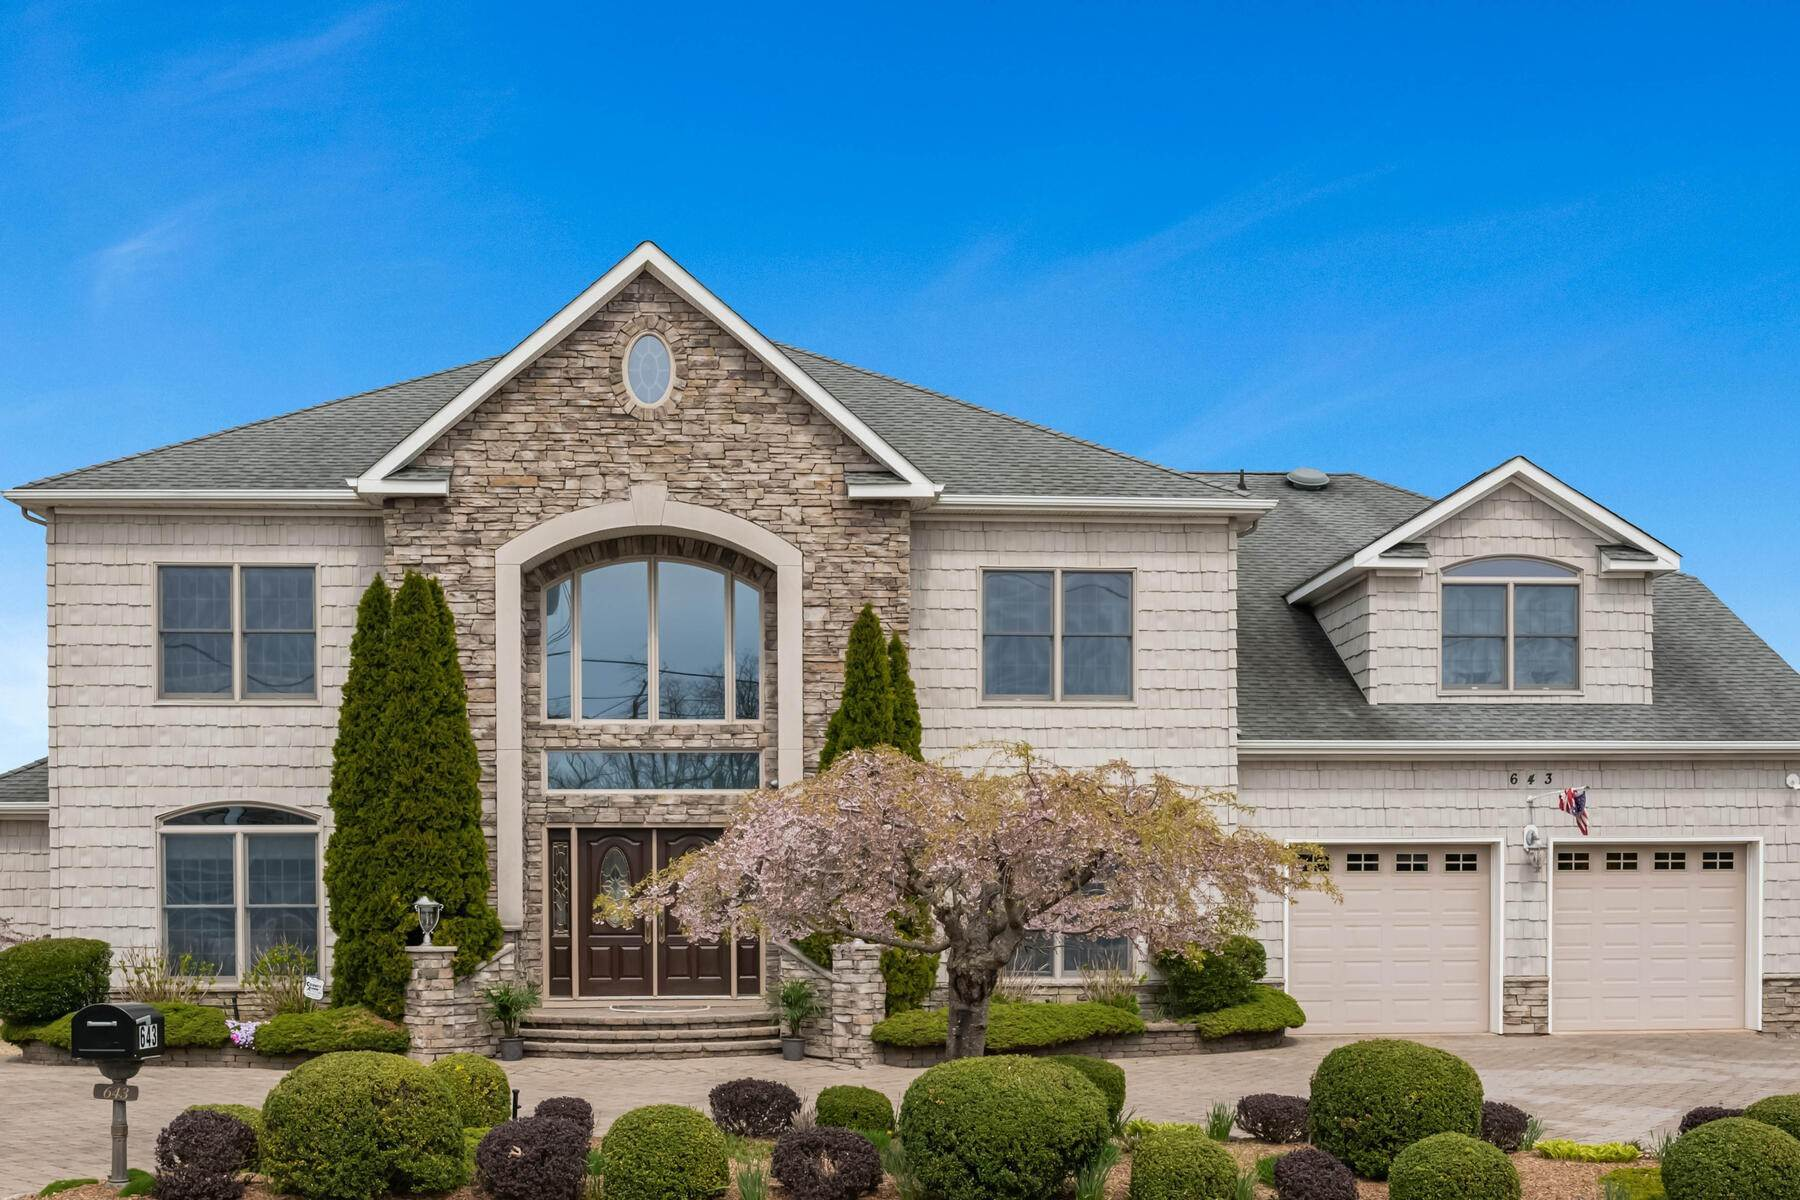 Single Family Homes for Sale at Magnificent Waterfront Custom Built Colonial Home 643 Bayside Avenue, Beachwood, New Jersey 08722 United States